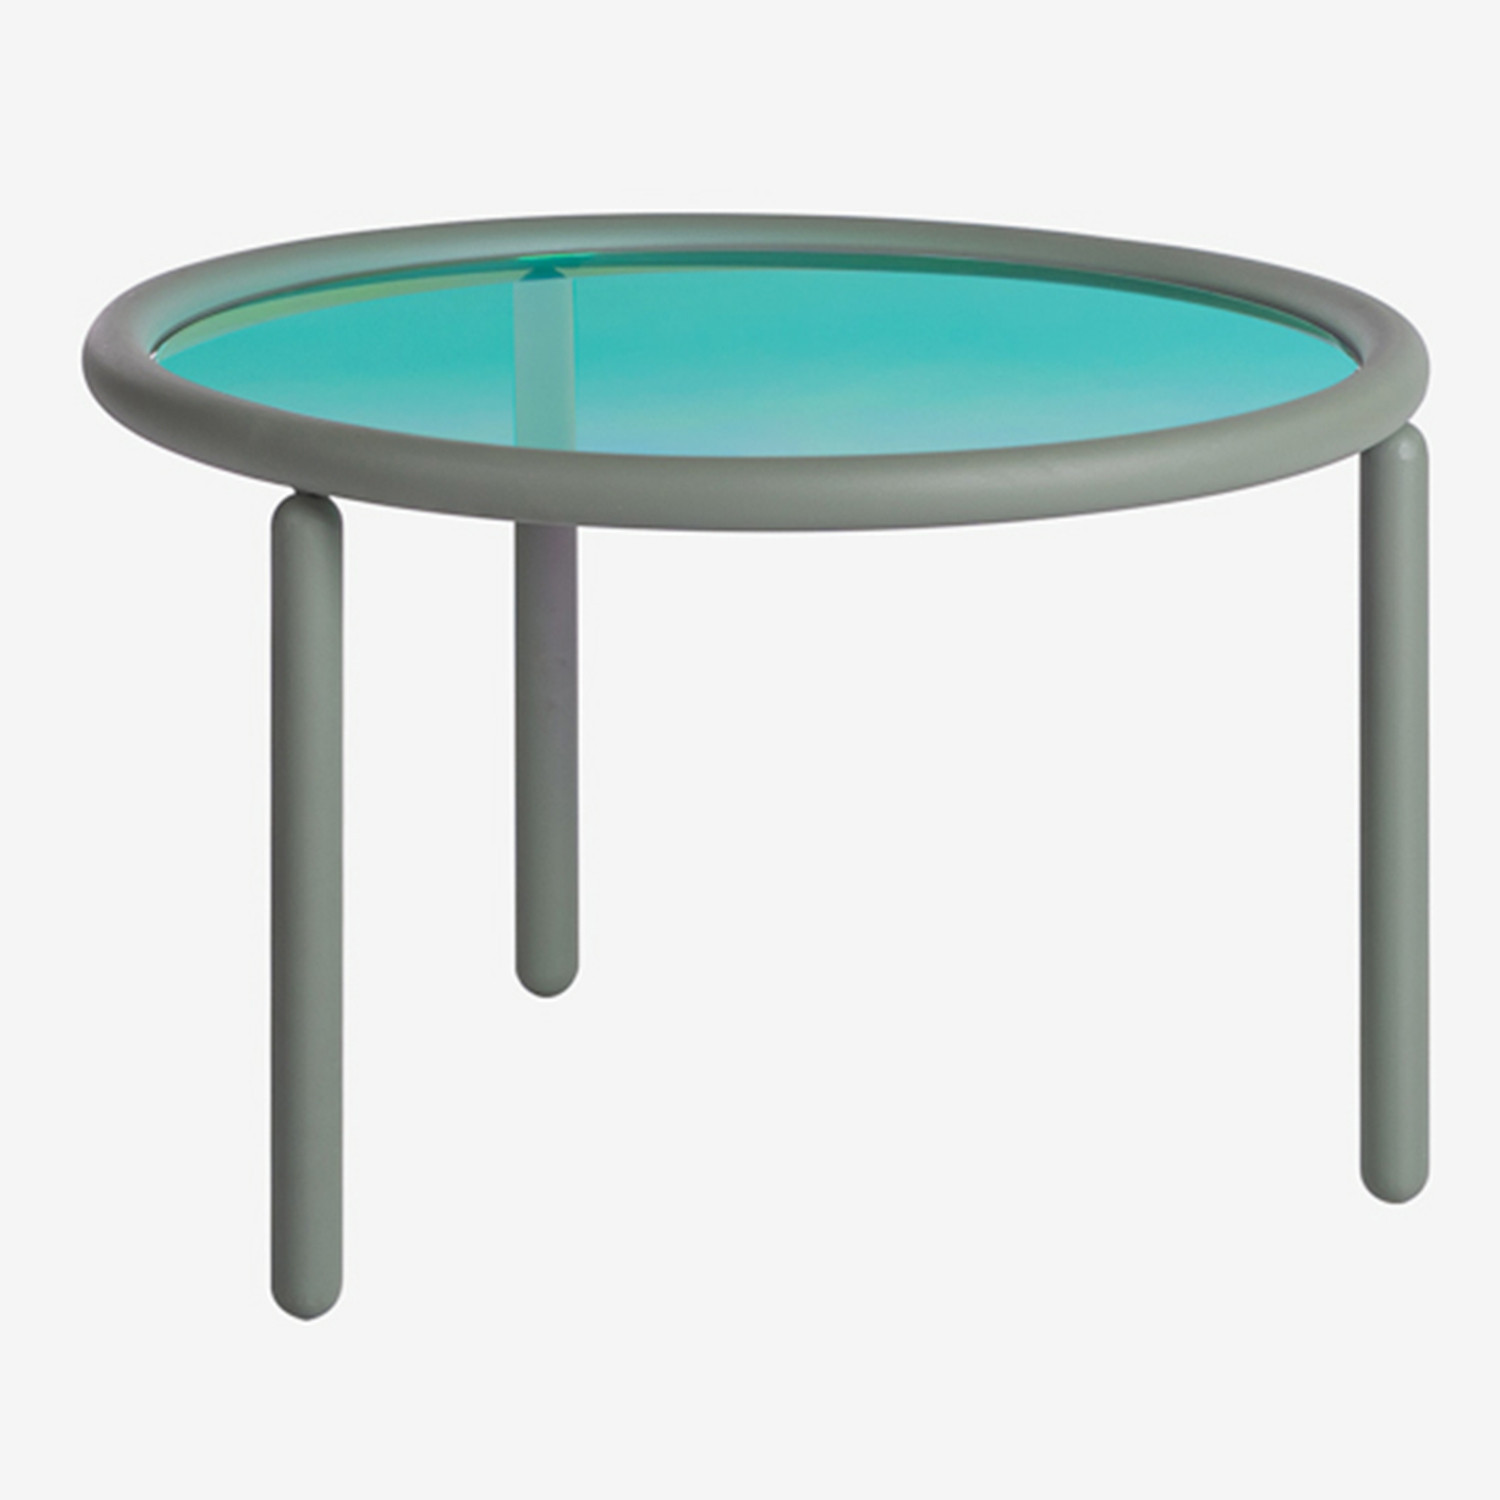 Disk Iridescent Side Table, gallery image 1